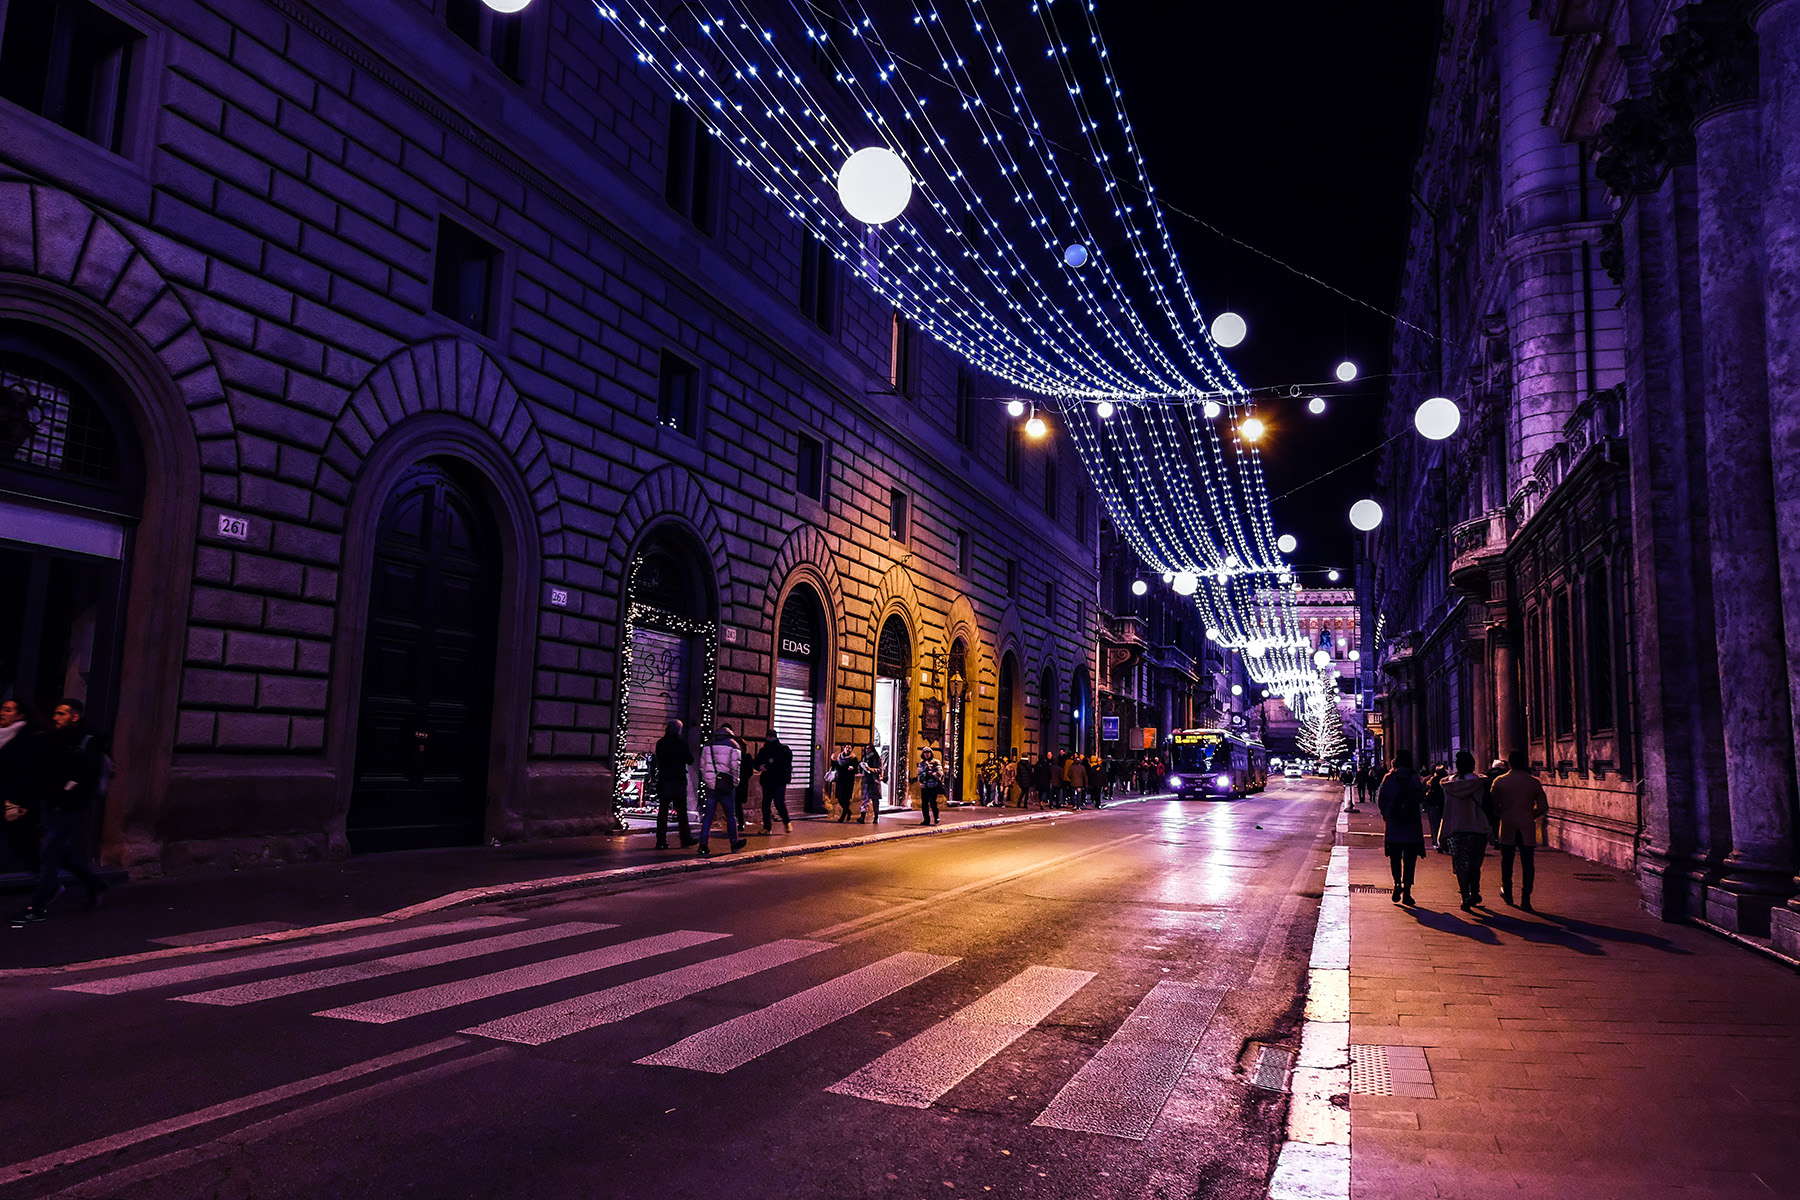 A street in Rome decorated for Christmas